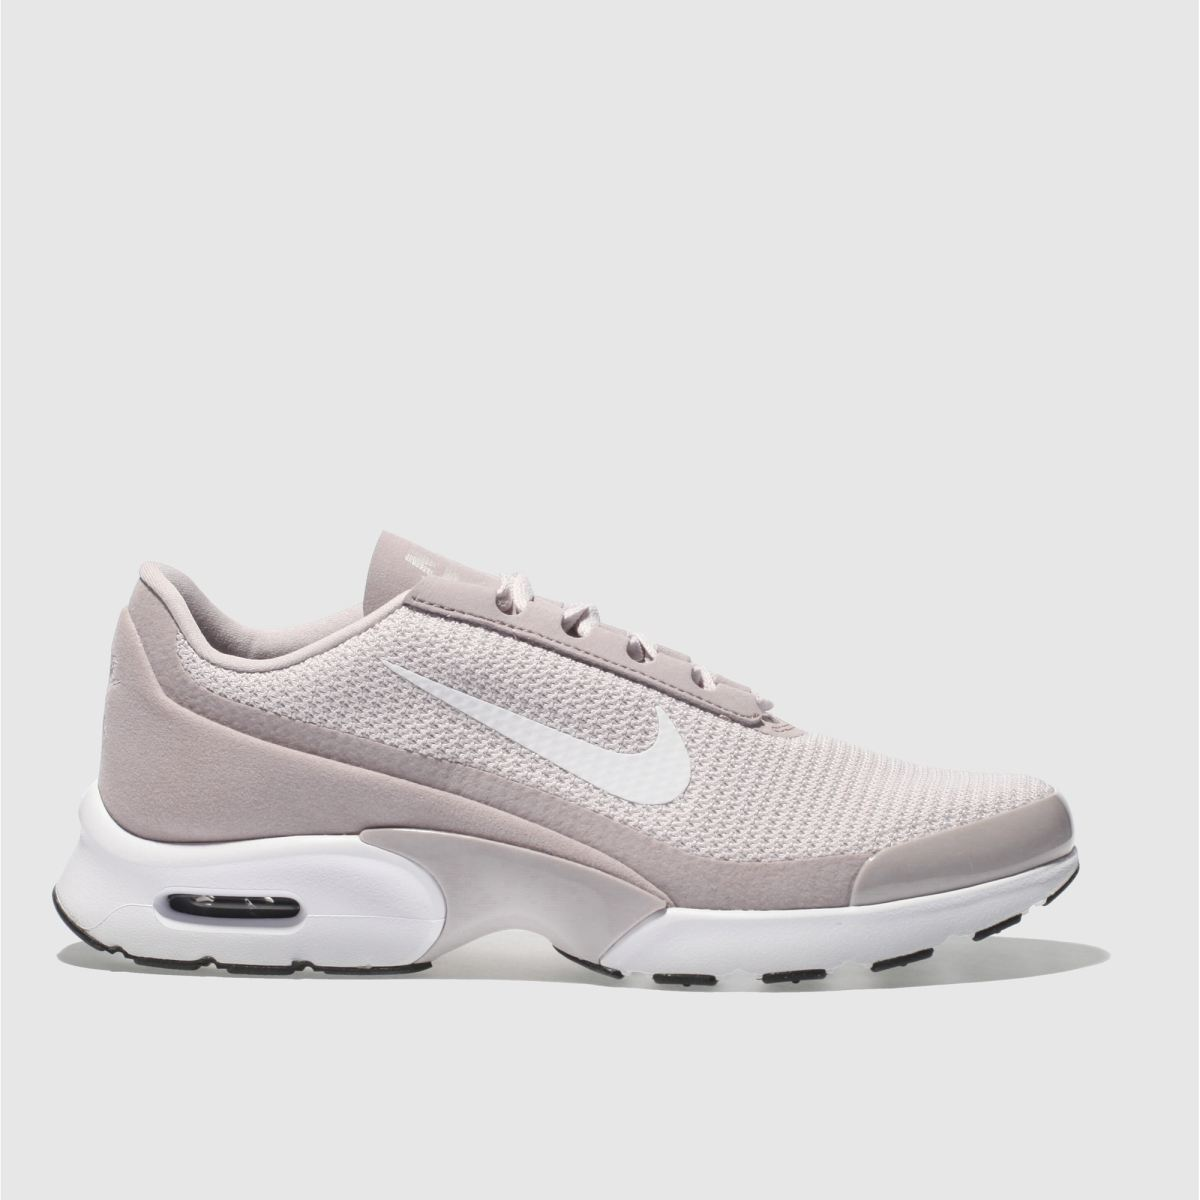 Nike Pale Pink Air Max Jewel Trainers